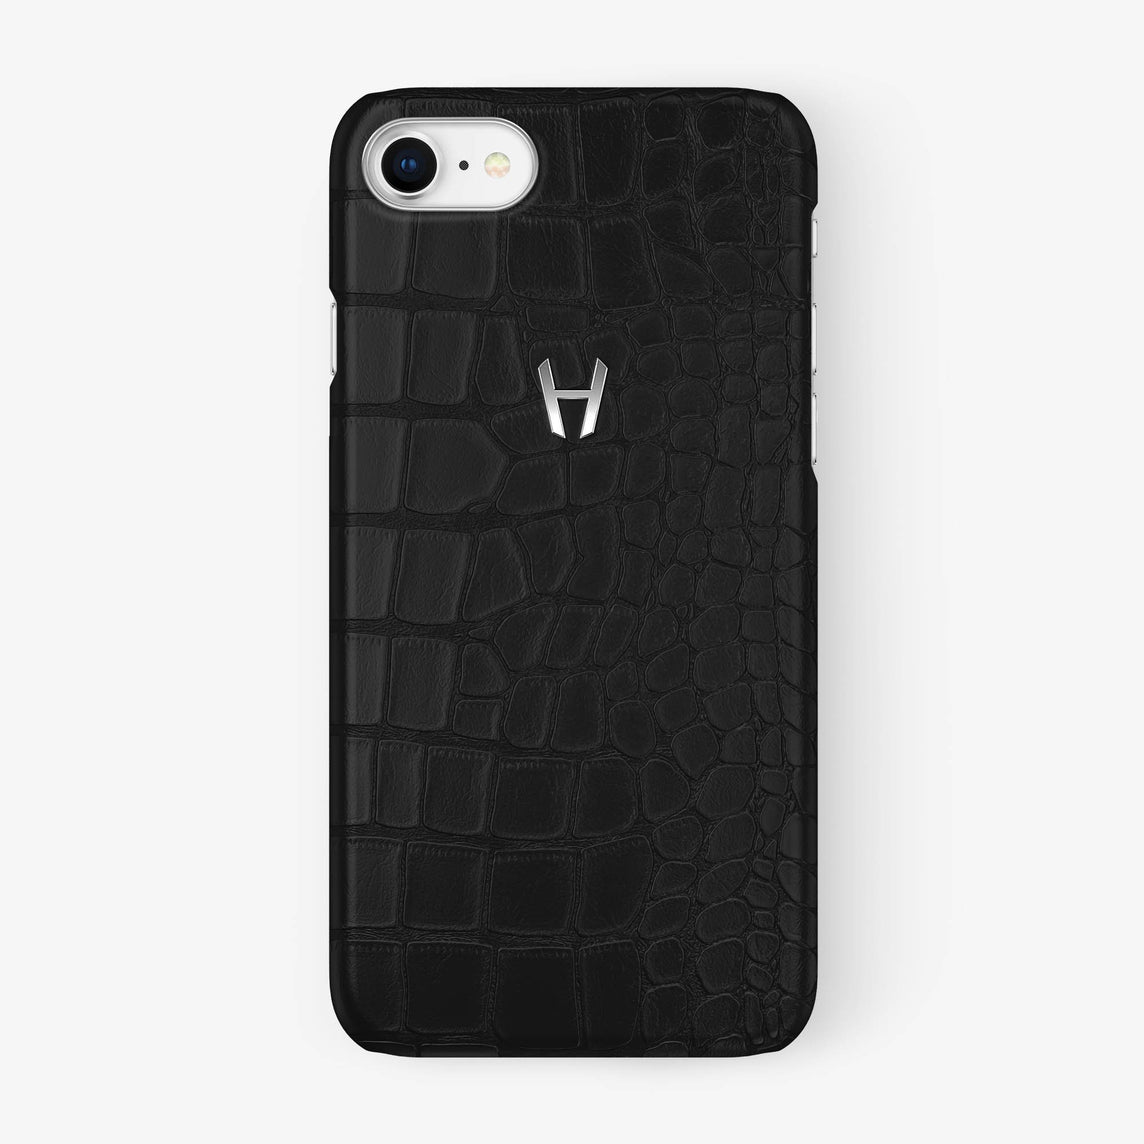 Alligator Case iPhone 7/8 | Phantom Black - Stainless Steel - Hadoro